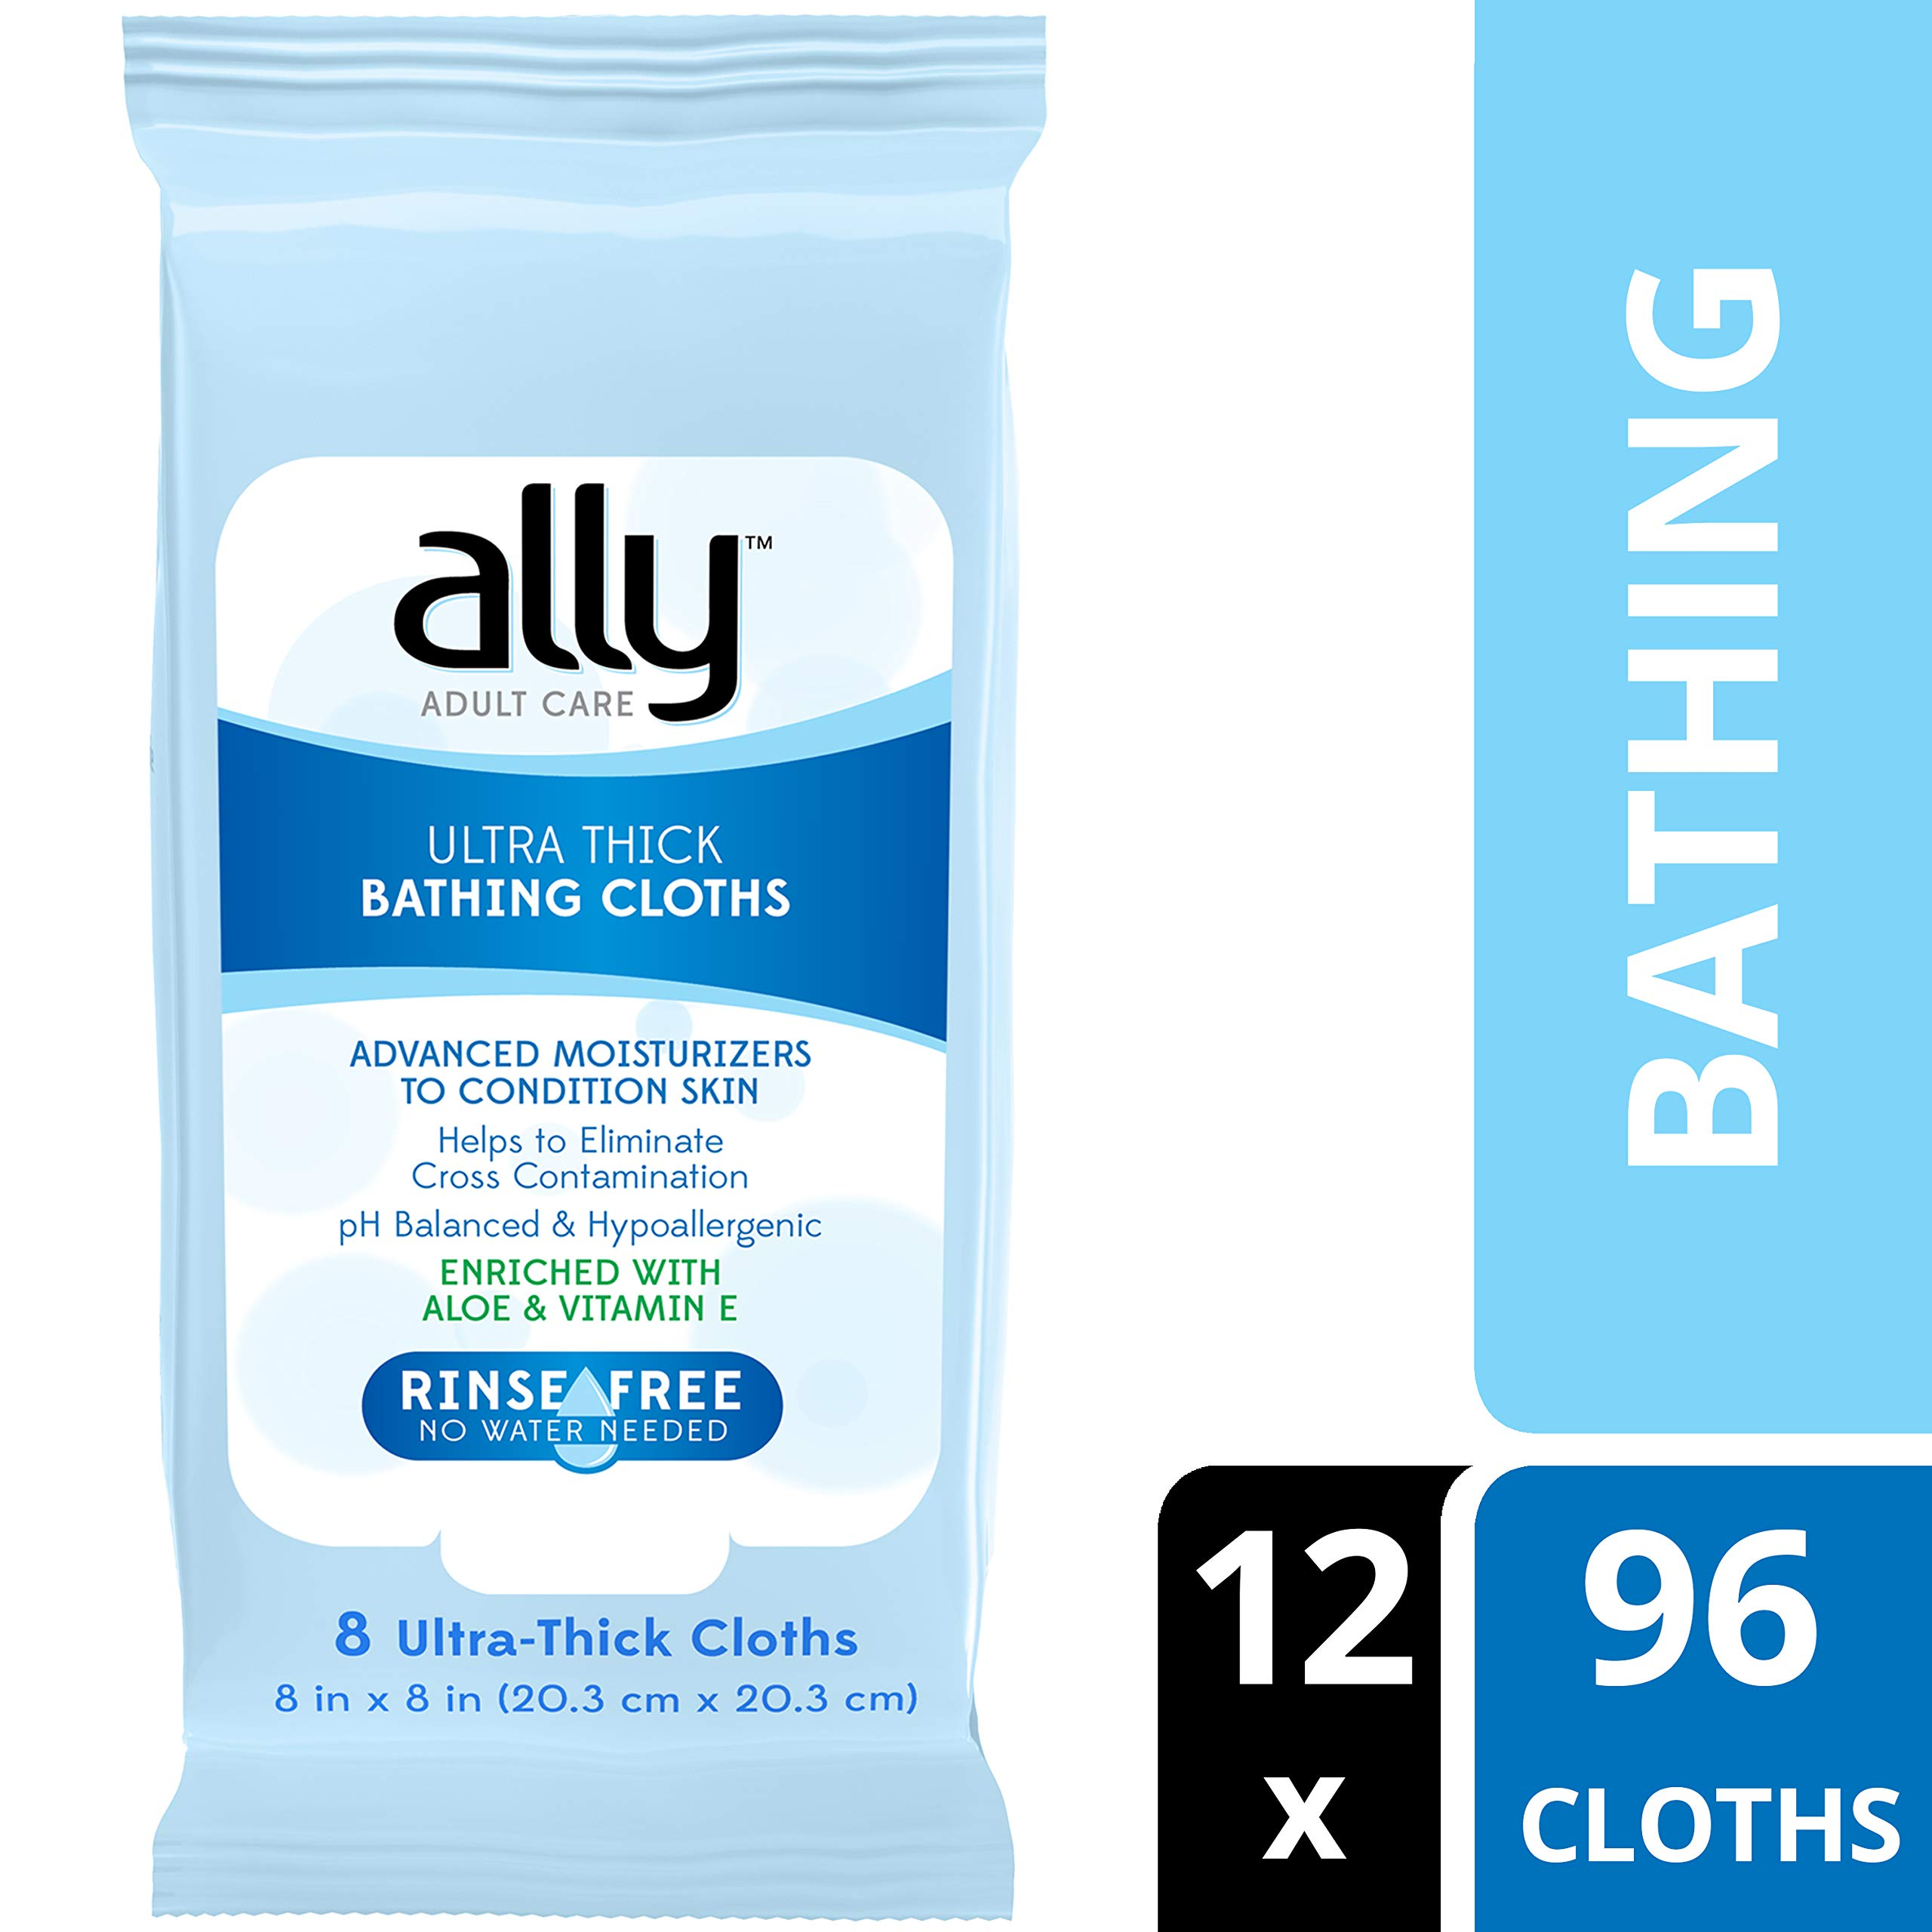 Ally Rinse-Free Ultra-Thick Adult Bathing Cloths, Microwaveable and Hypoallergenic, 96 Count (12 Packs of 8 Wipes) by Ally